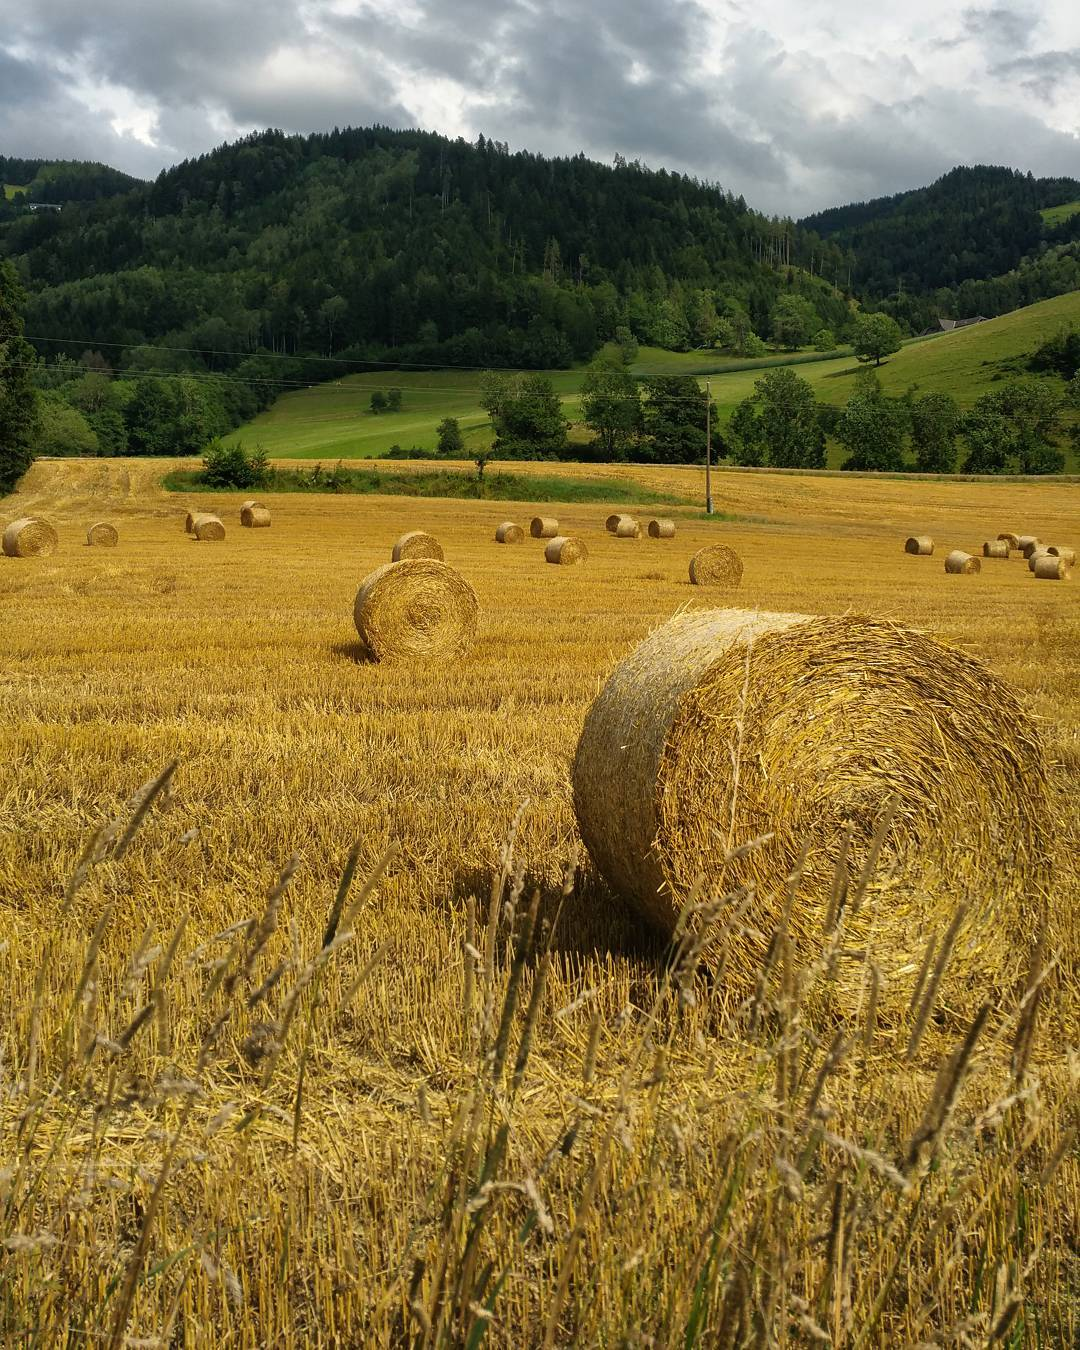 A beautiful agricultural perspective